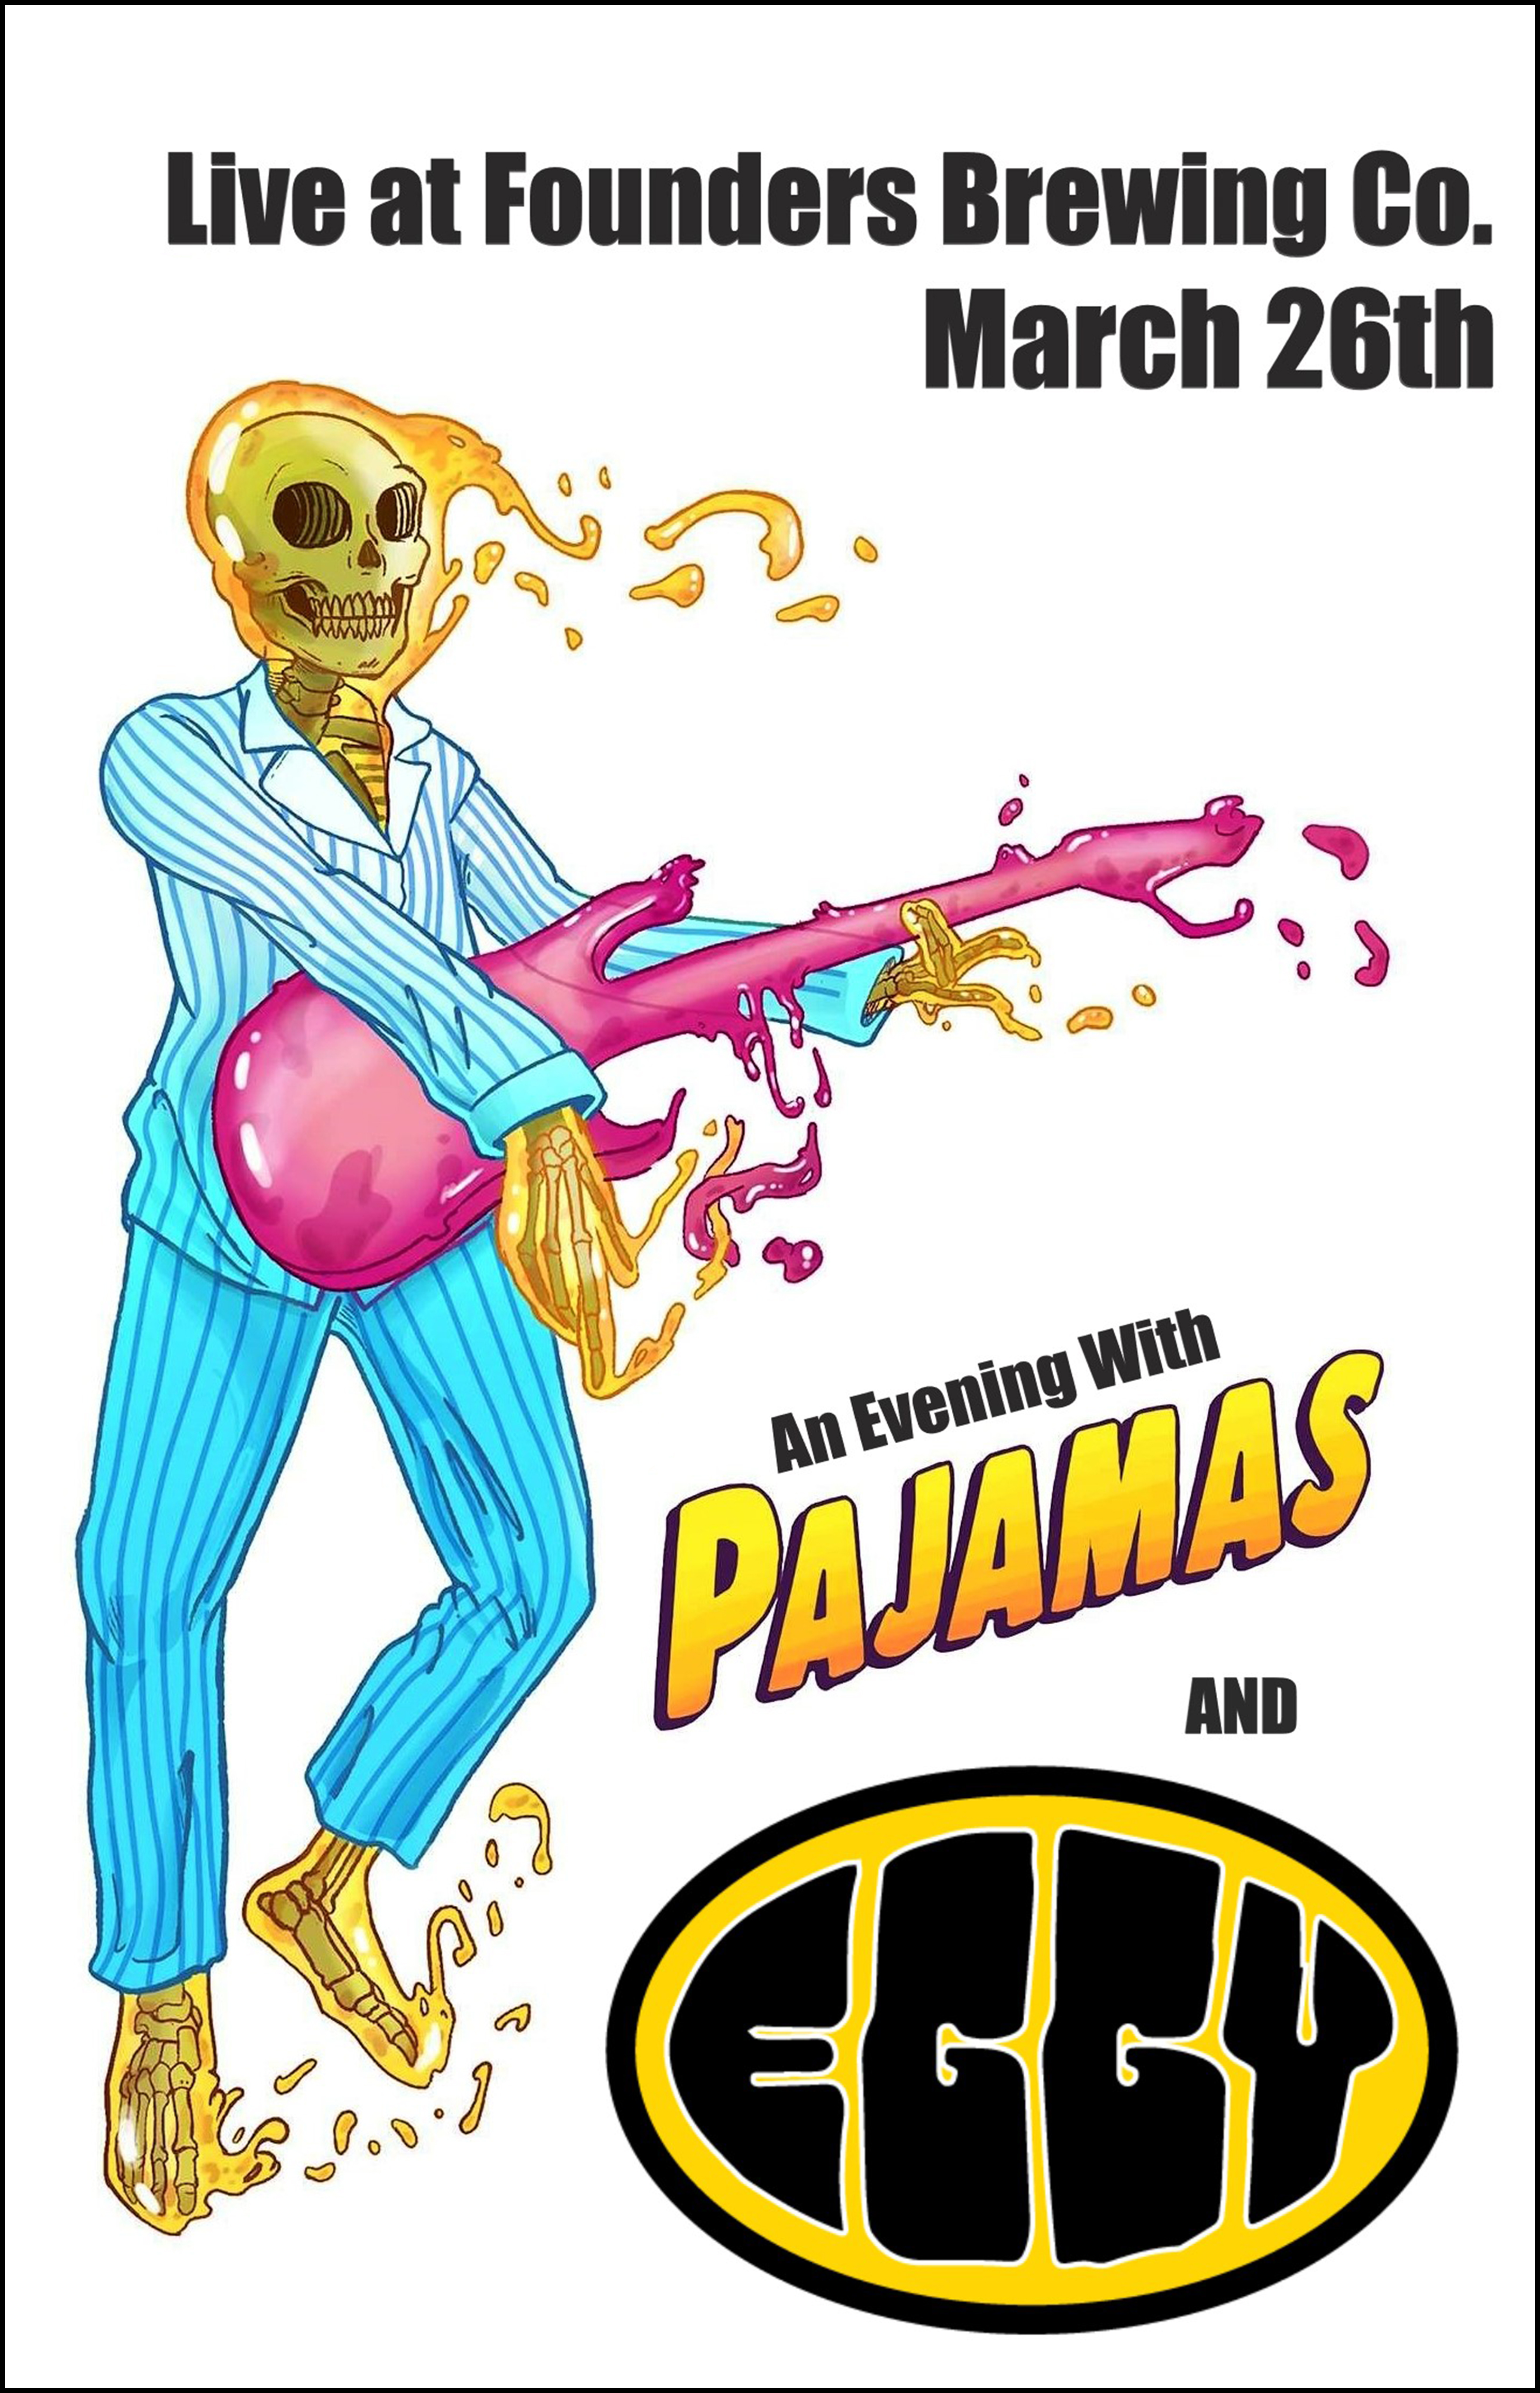 Pajamas and Eggy event poster hosted by Founders Brewing Co.